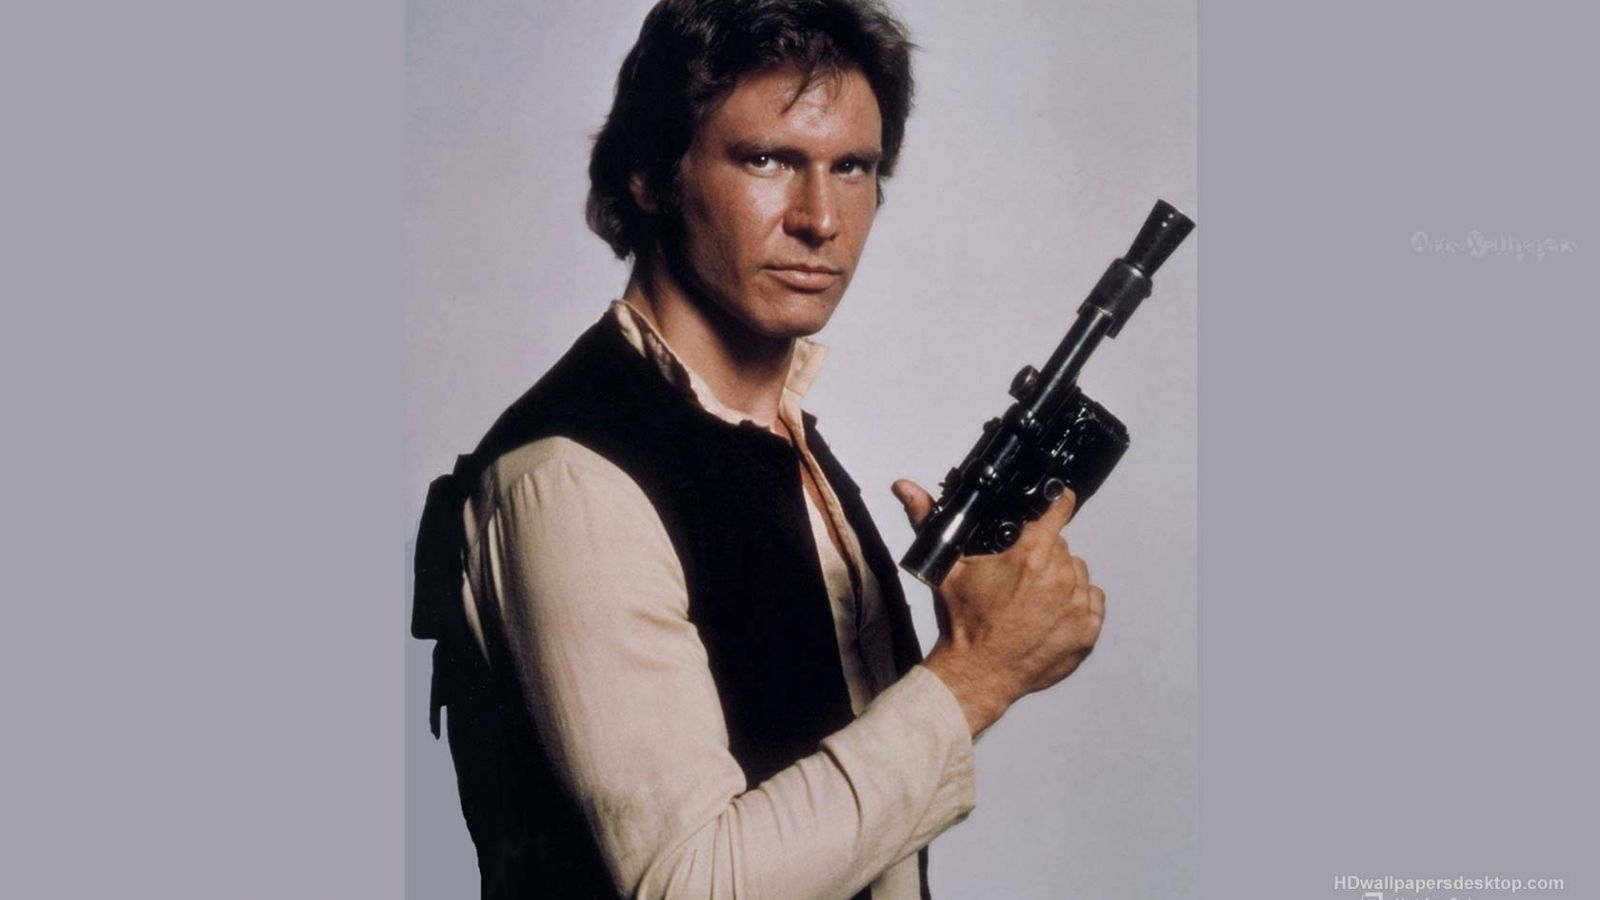 Han Solo Star Wars Wallpapers Top Free Han Solo Star Wars Backgrounds Wallpaperaccess